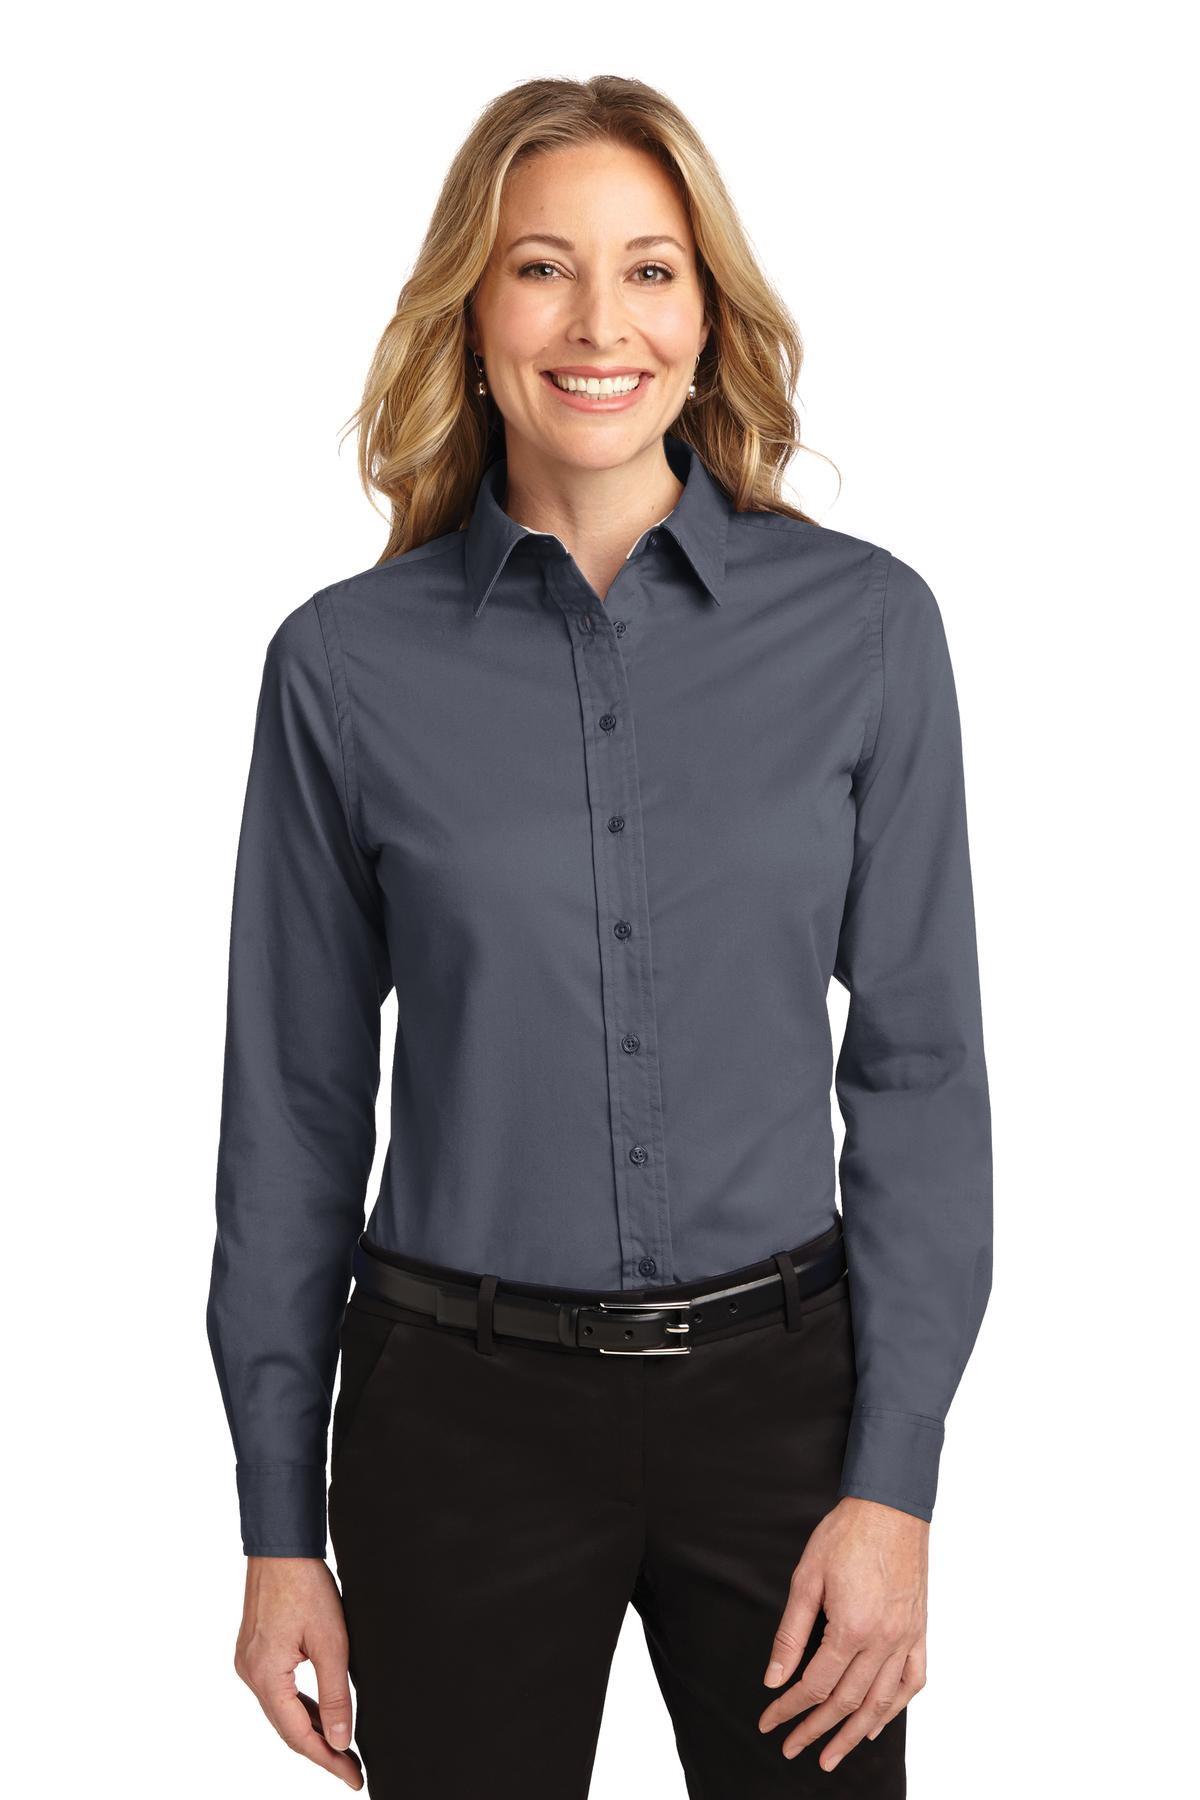 Port Authority ®  Ladies Long Sleeve Easy Care Shirt.  L608 - Steel Grey/ Light Stone